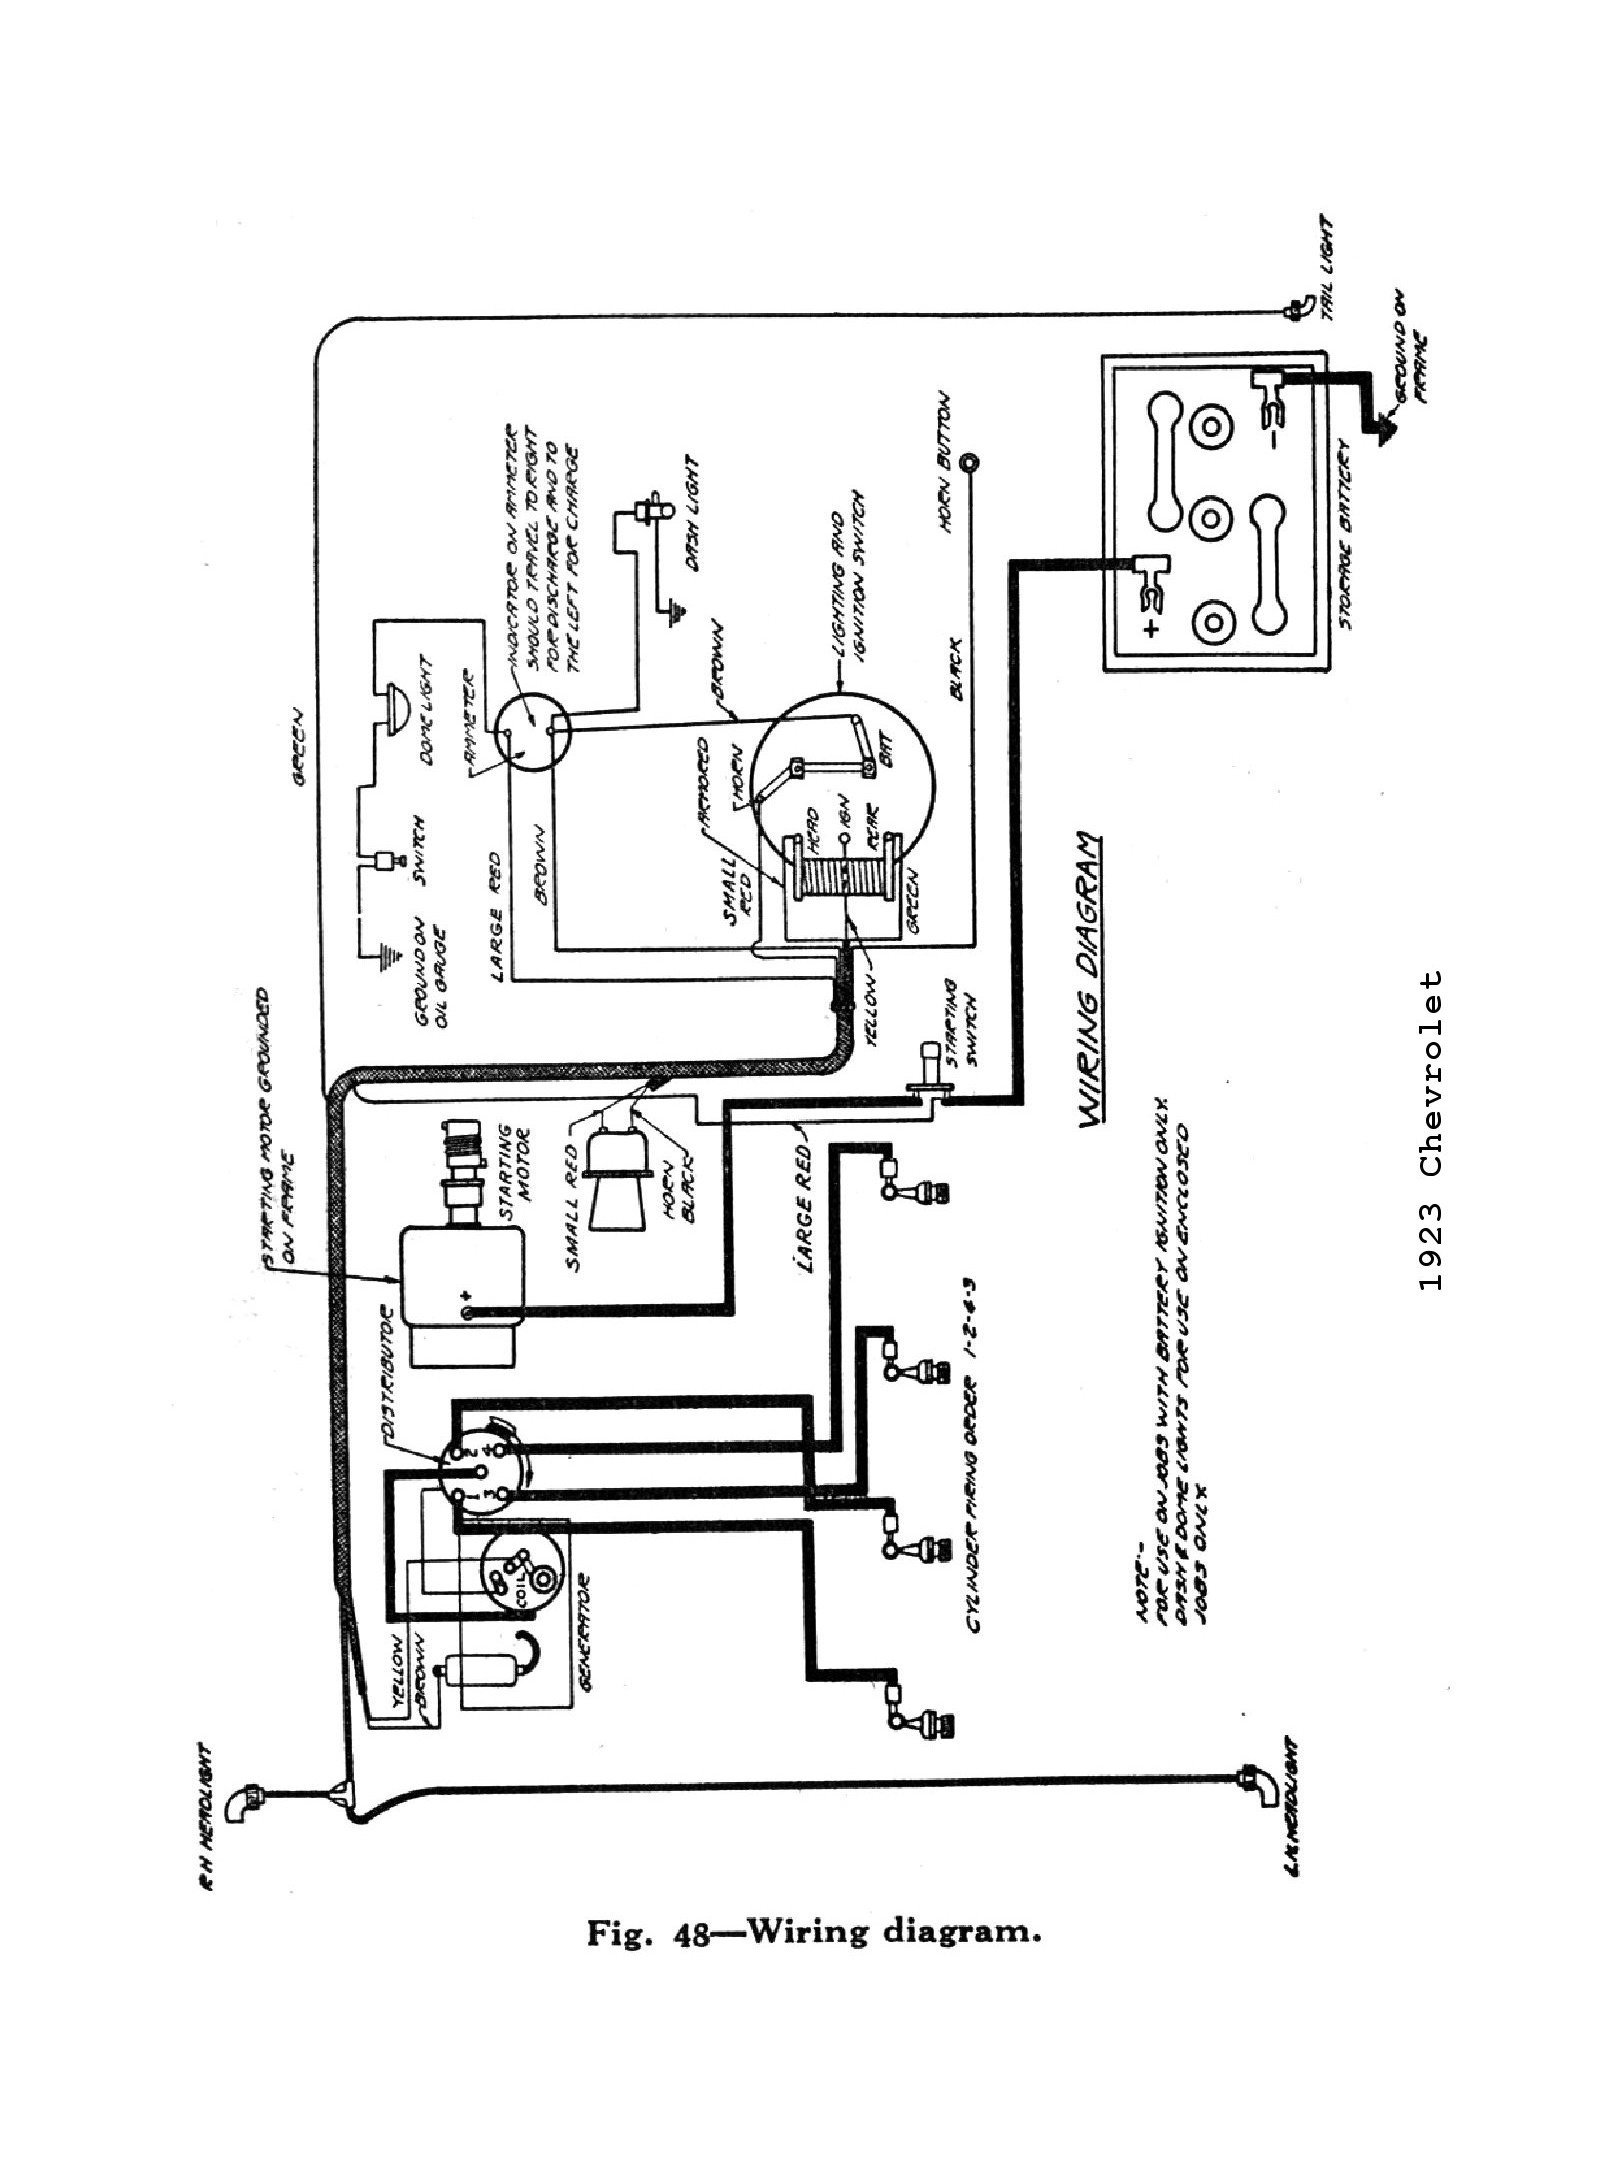 hight resolution of 1934 ford wiring diagram wiring diagrams 1955 dodge wiring diagram 1934 ford wiring diagram